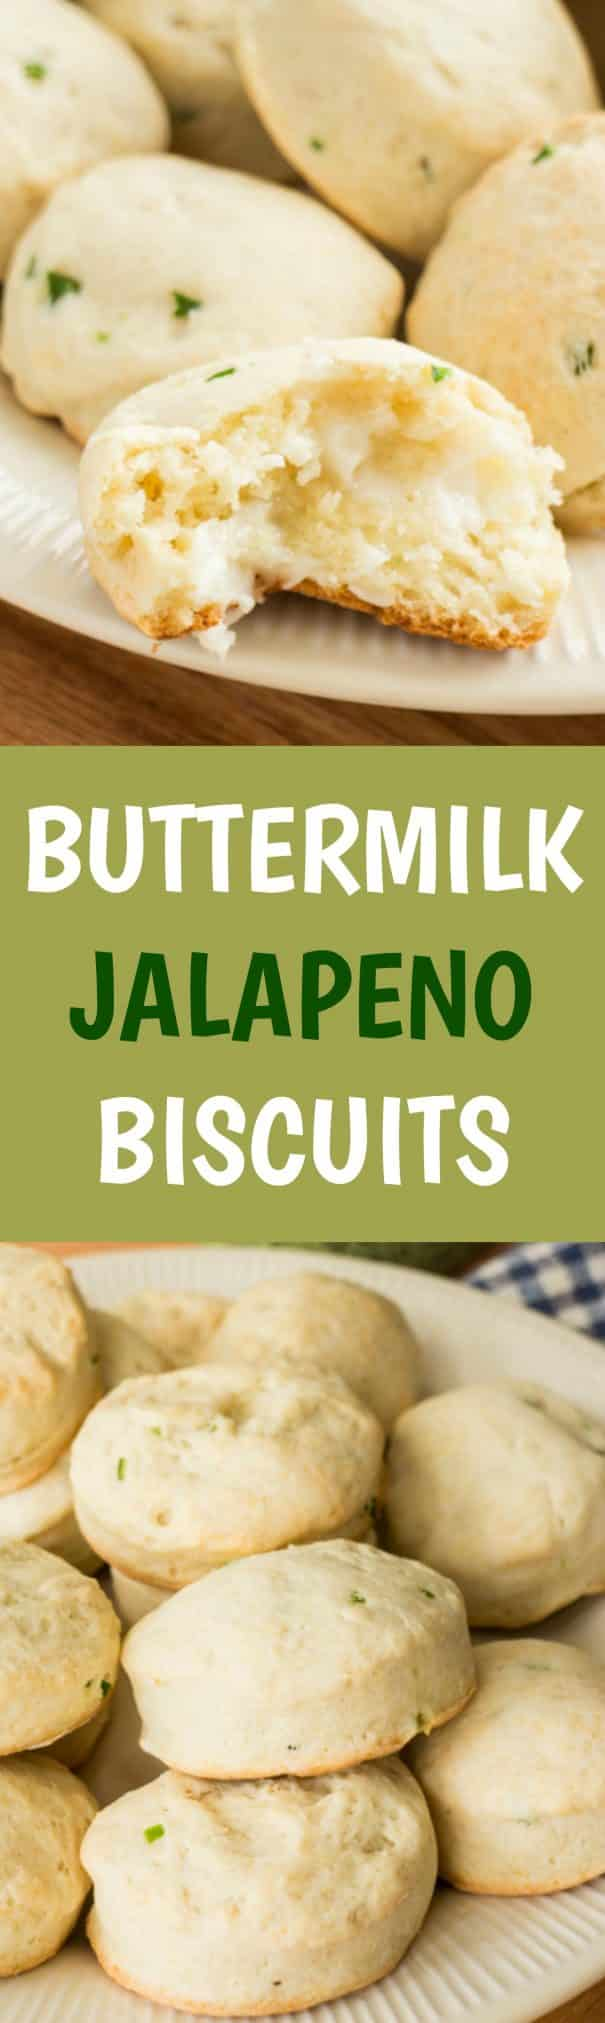 DELICIOUS easy to make Jalapeno Buttermilk Biscuits recipe!  Recipe includes step by step pictures!  These Southern style homemade biscuits are made from scratch with diced up jalapeno peppers.  They are best served with a warm comfort food casserole!